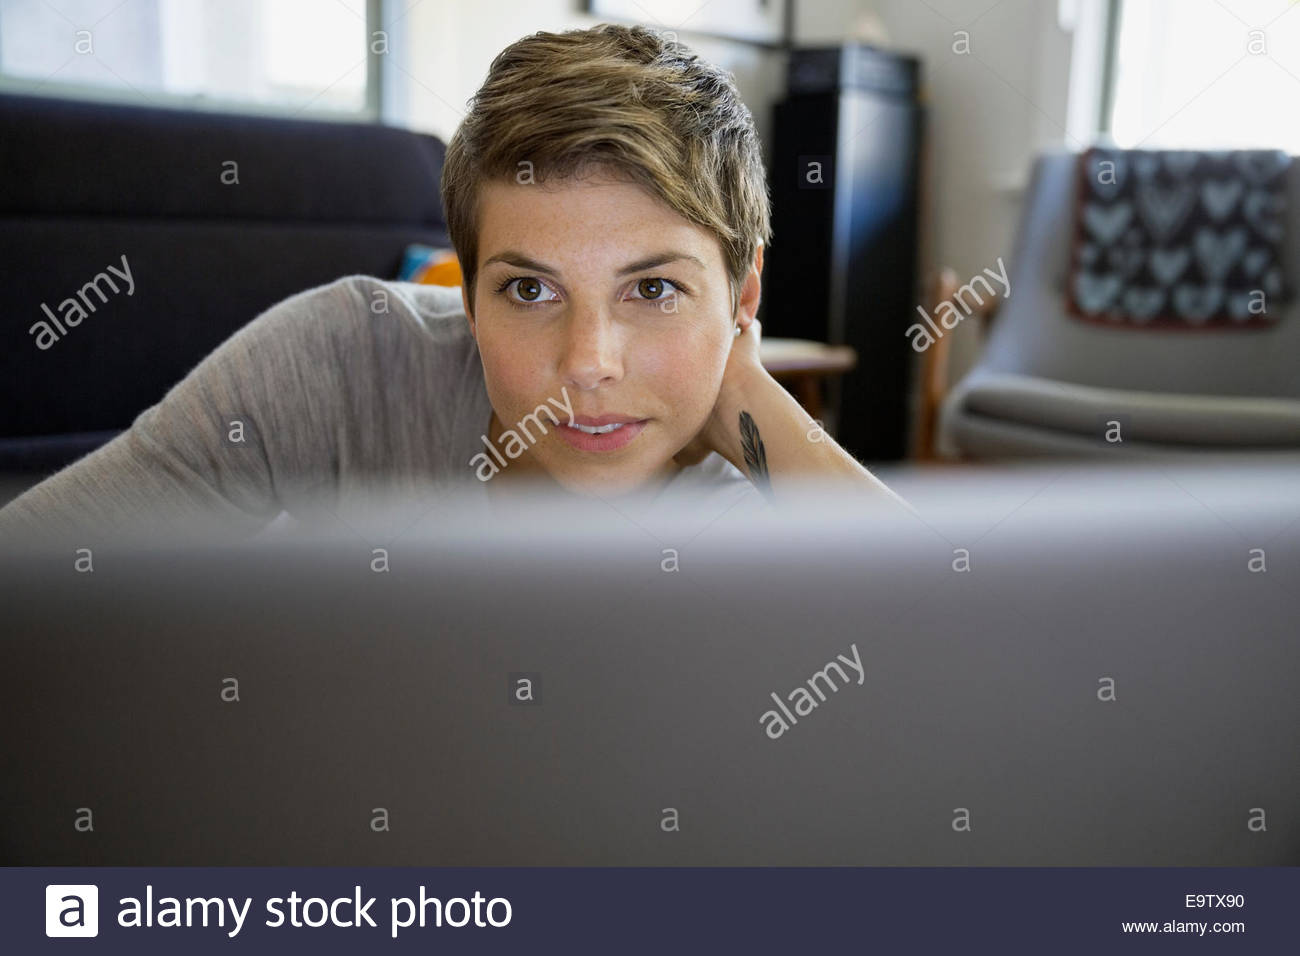 Close up of woman using laptop Photo Stock